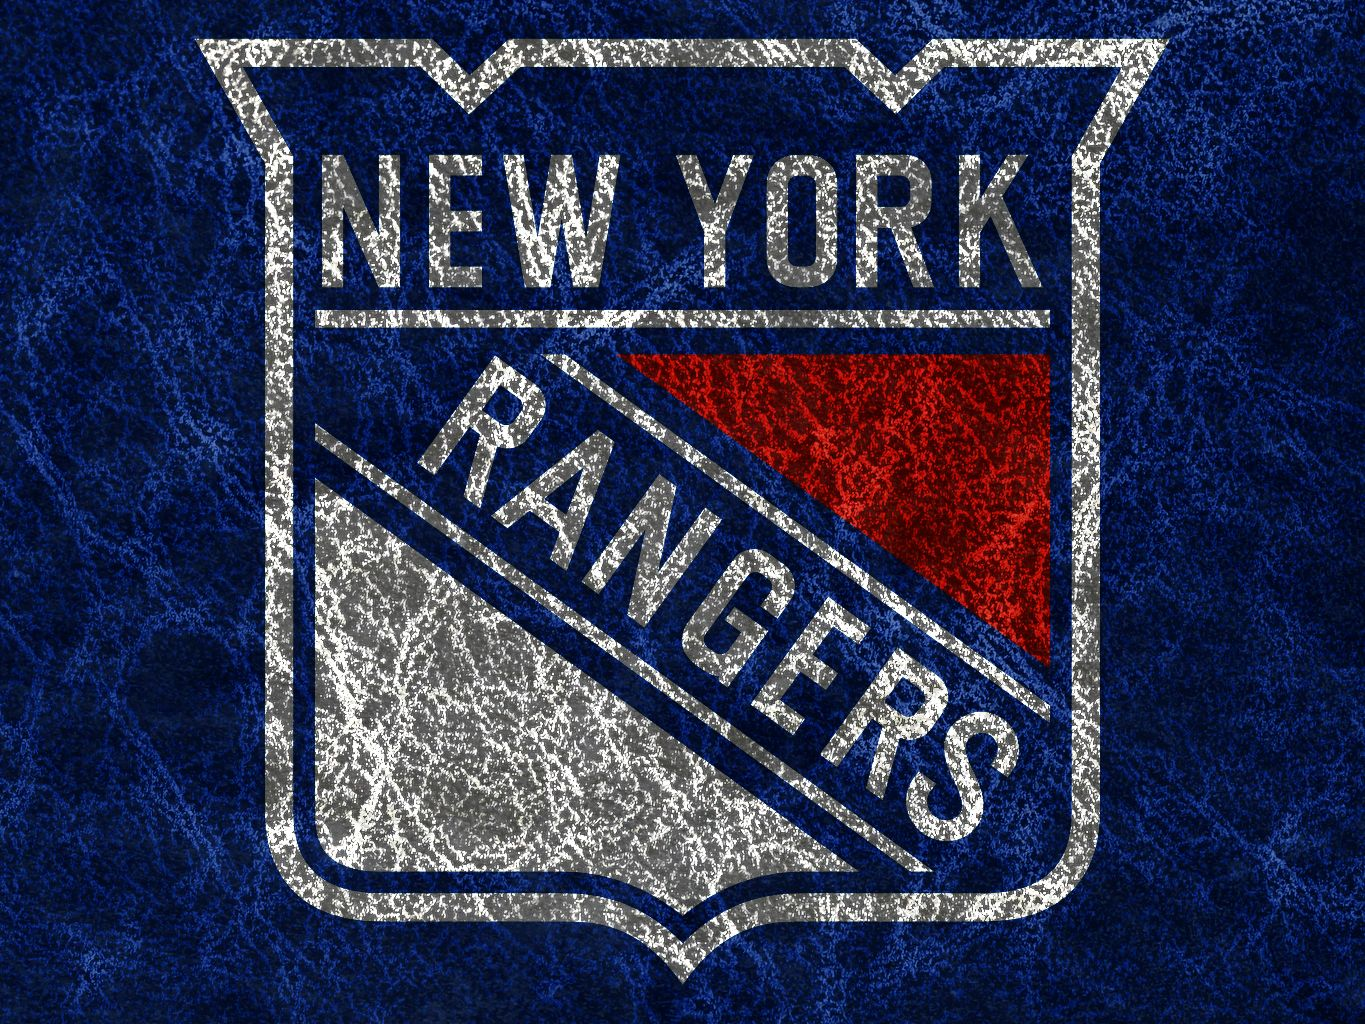 New York Rangers Hd Wallpapers With Images New York Rangers